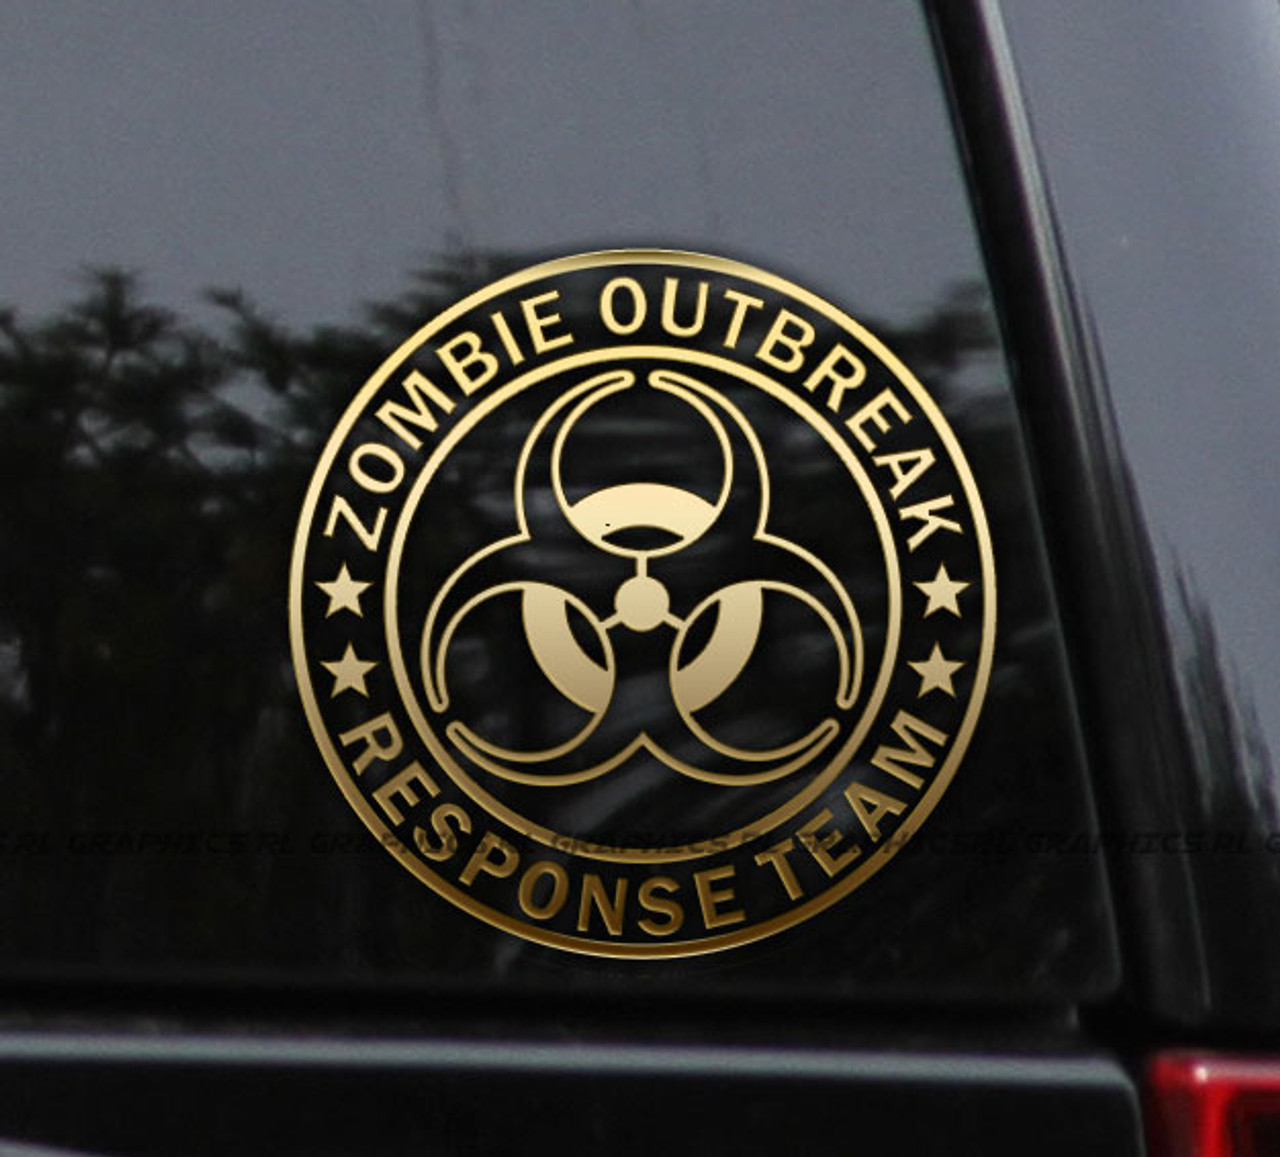 Zombie Outbreak Response Team Decal Vinyl Sticker Car Window